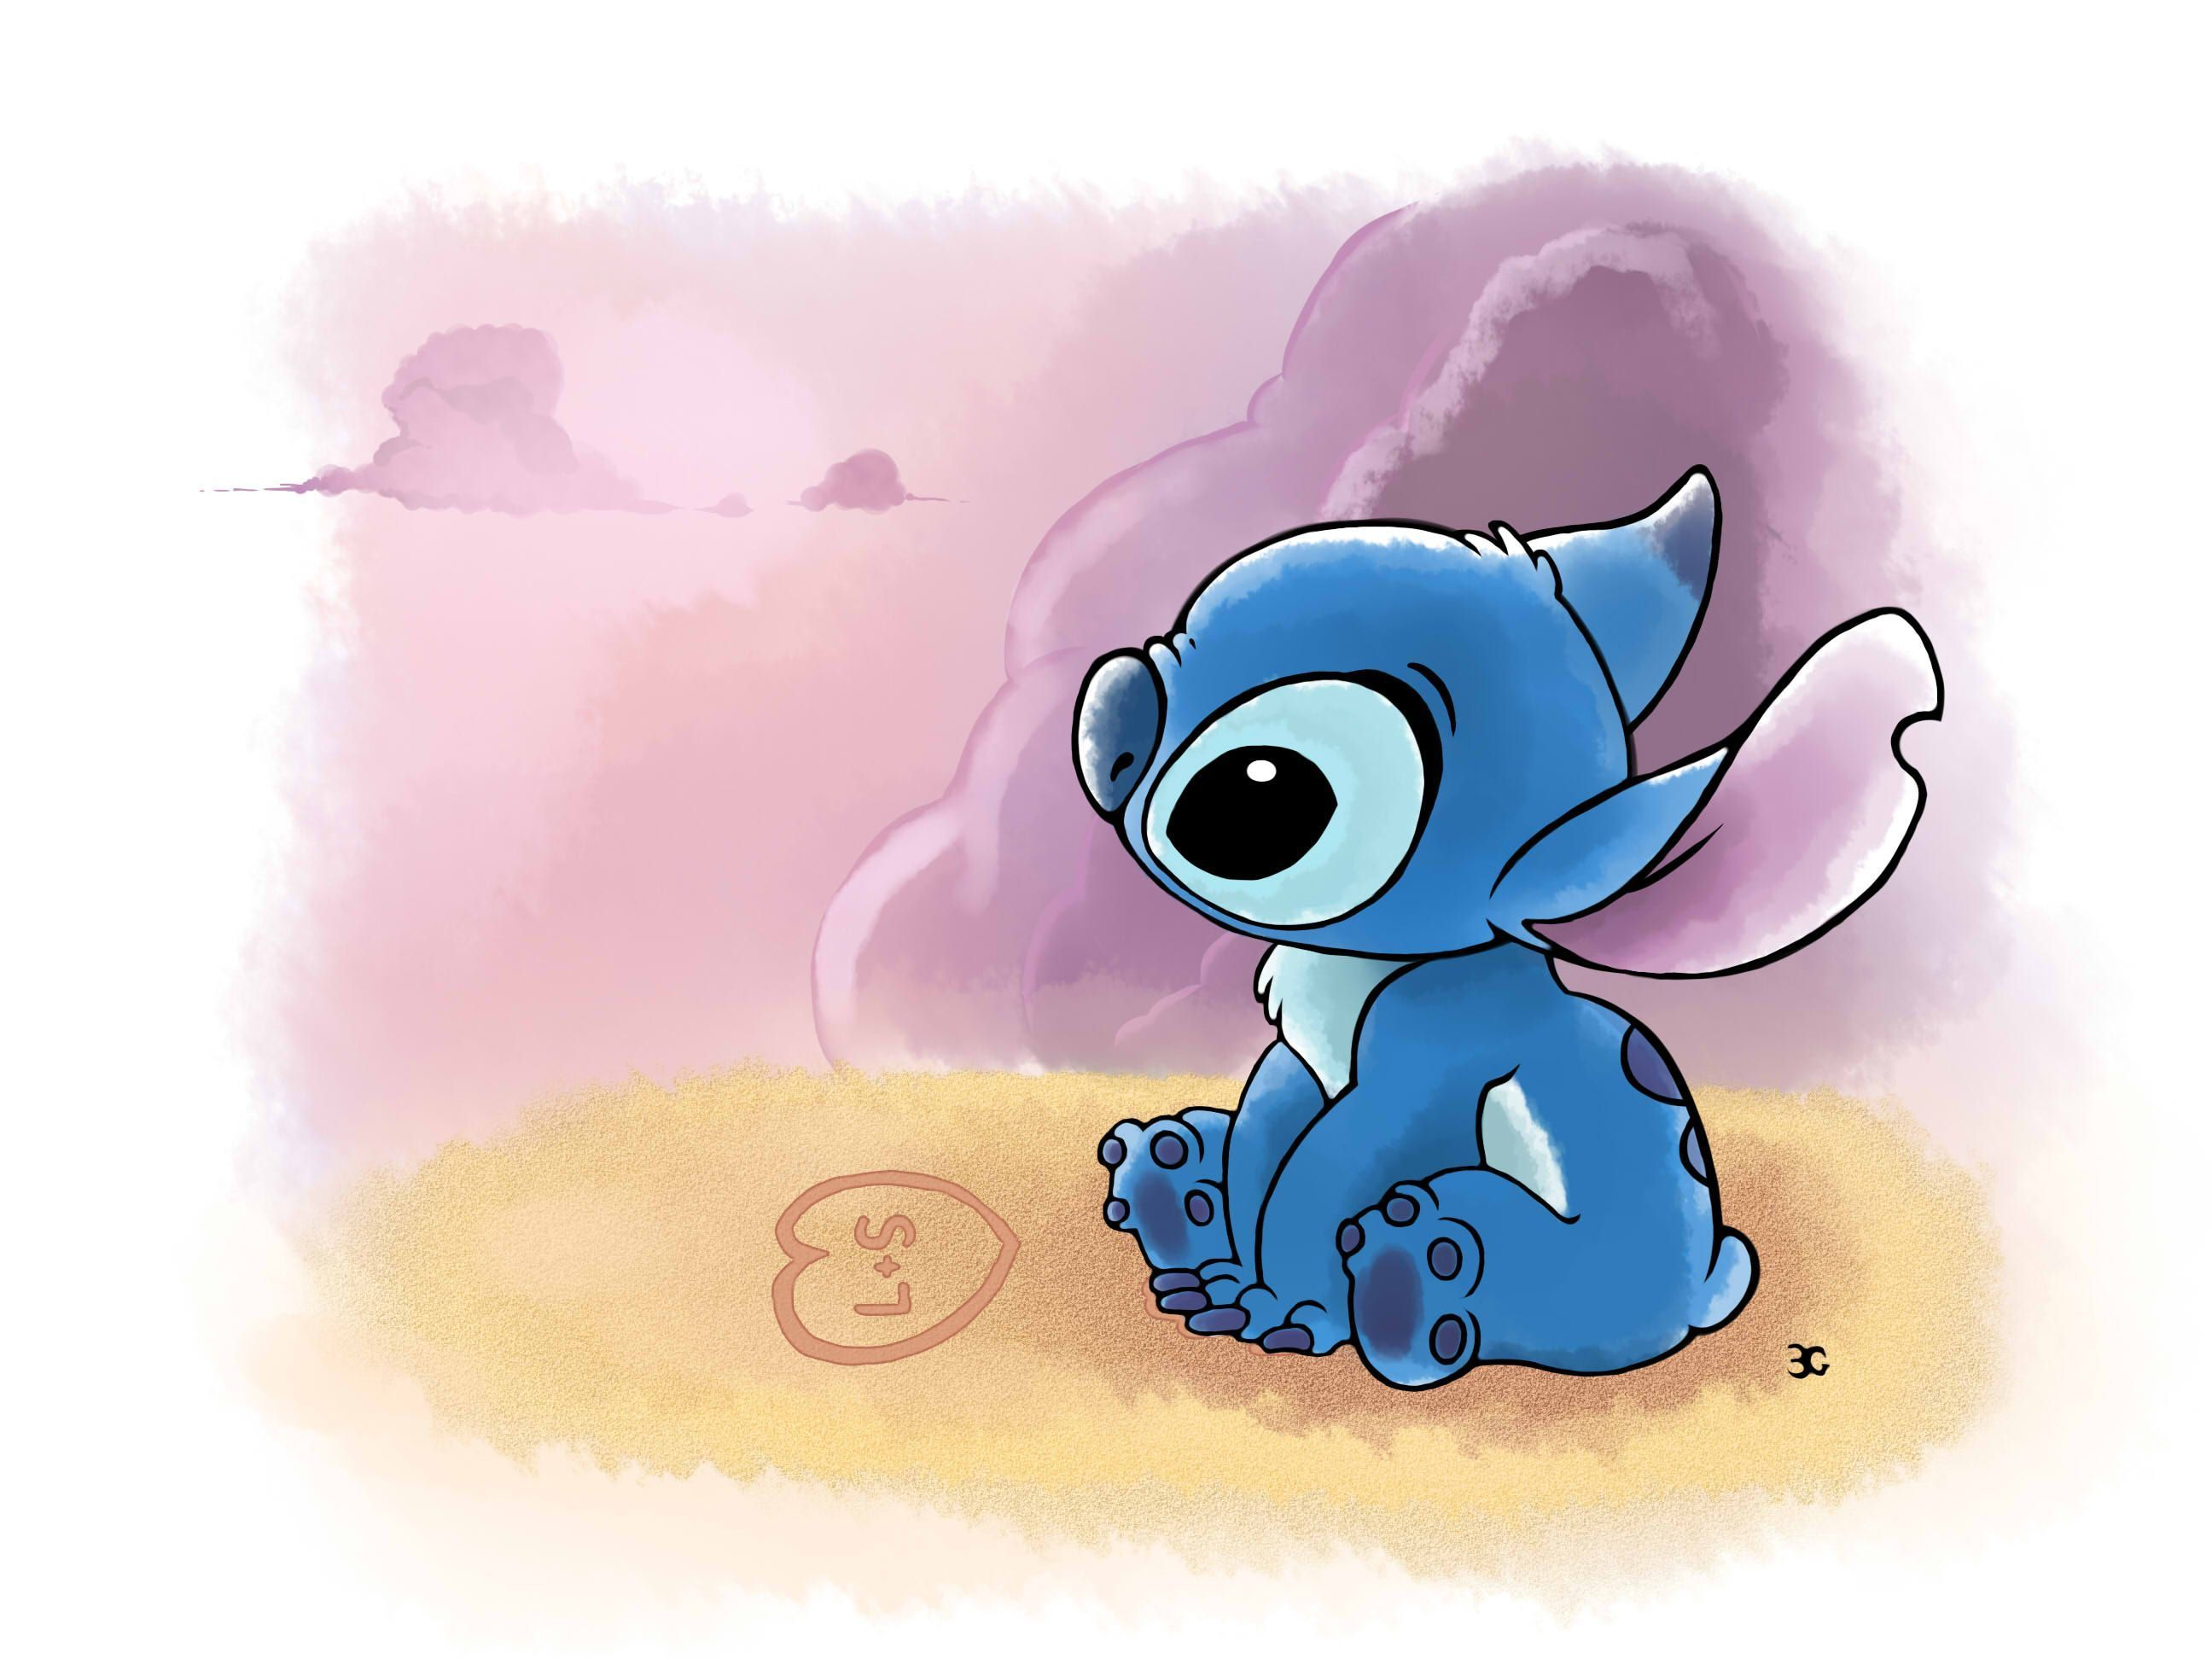 Cute Stitch Wallpapers - Top gratis fondos de Cute Stitch